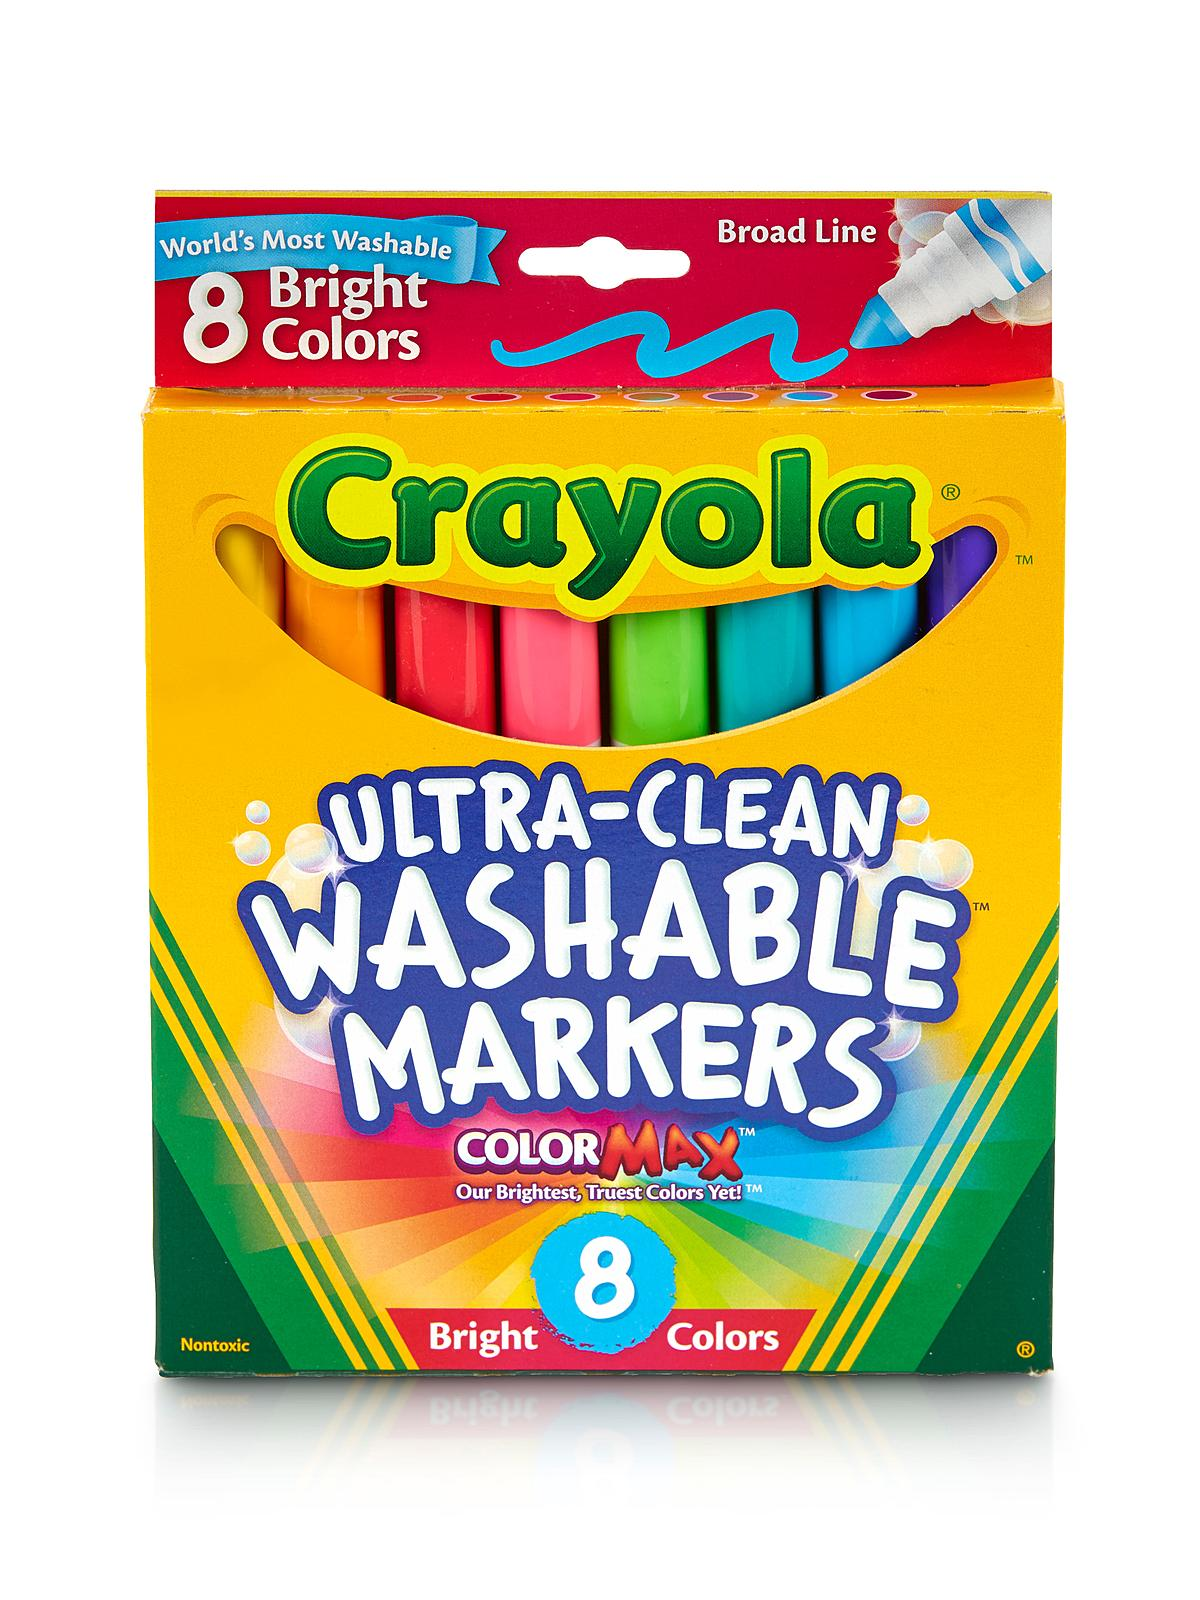 Bright Colors Ultra-Clean Washable Markers